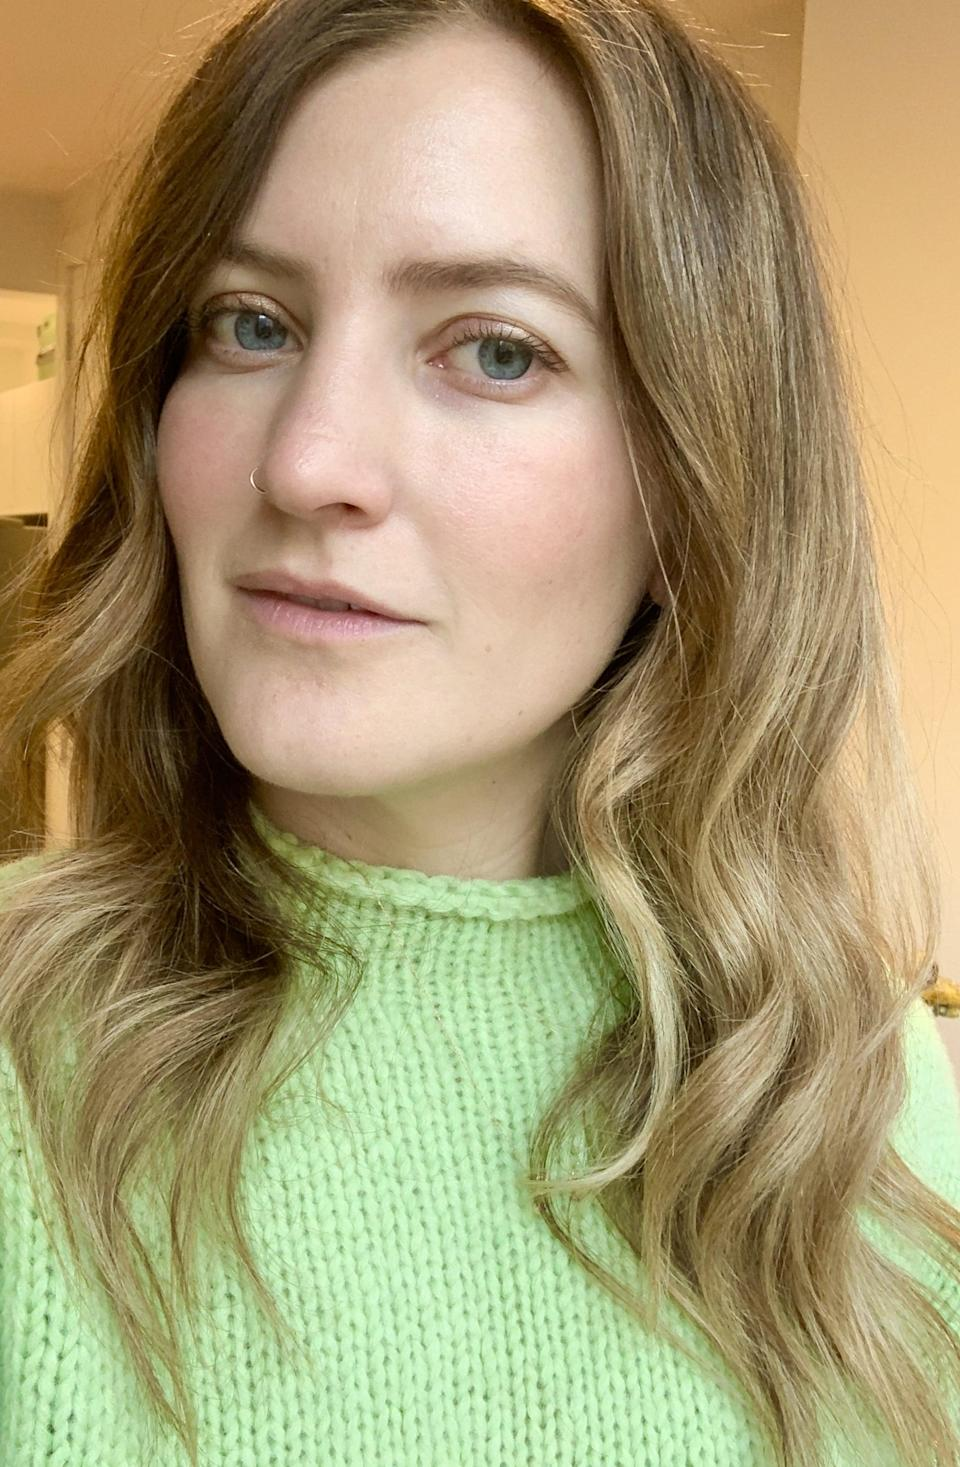 """<p>I can officially say I'm in love with how my face looks. I wake up looking """"alive, alert, awake, enthusiastic,"""" as my mom would say, and I don't need to wear any concealer. My face feels totally normal (maybe I've just gotten used to the feeling of fillers?) and there's no tenderness. I'm still a little shocked at how much difference smoothing out those few little wrinkles has made, both in how I look and how I feel confidence-wise. I'm going back to Dr. Marmur in a few days for a little tweak, but I couldn't be happier with the results. Consider me a filler convert.</p>"""